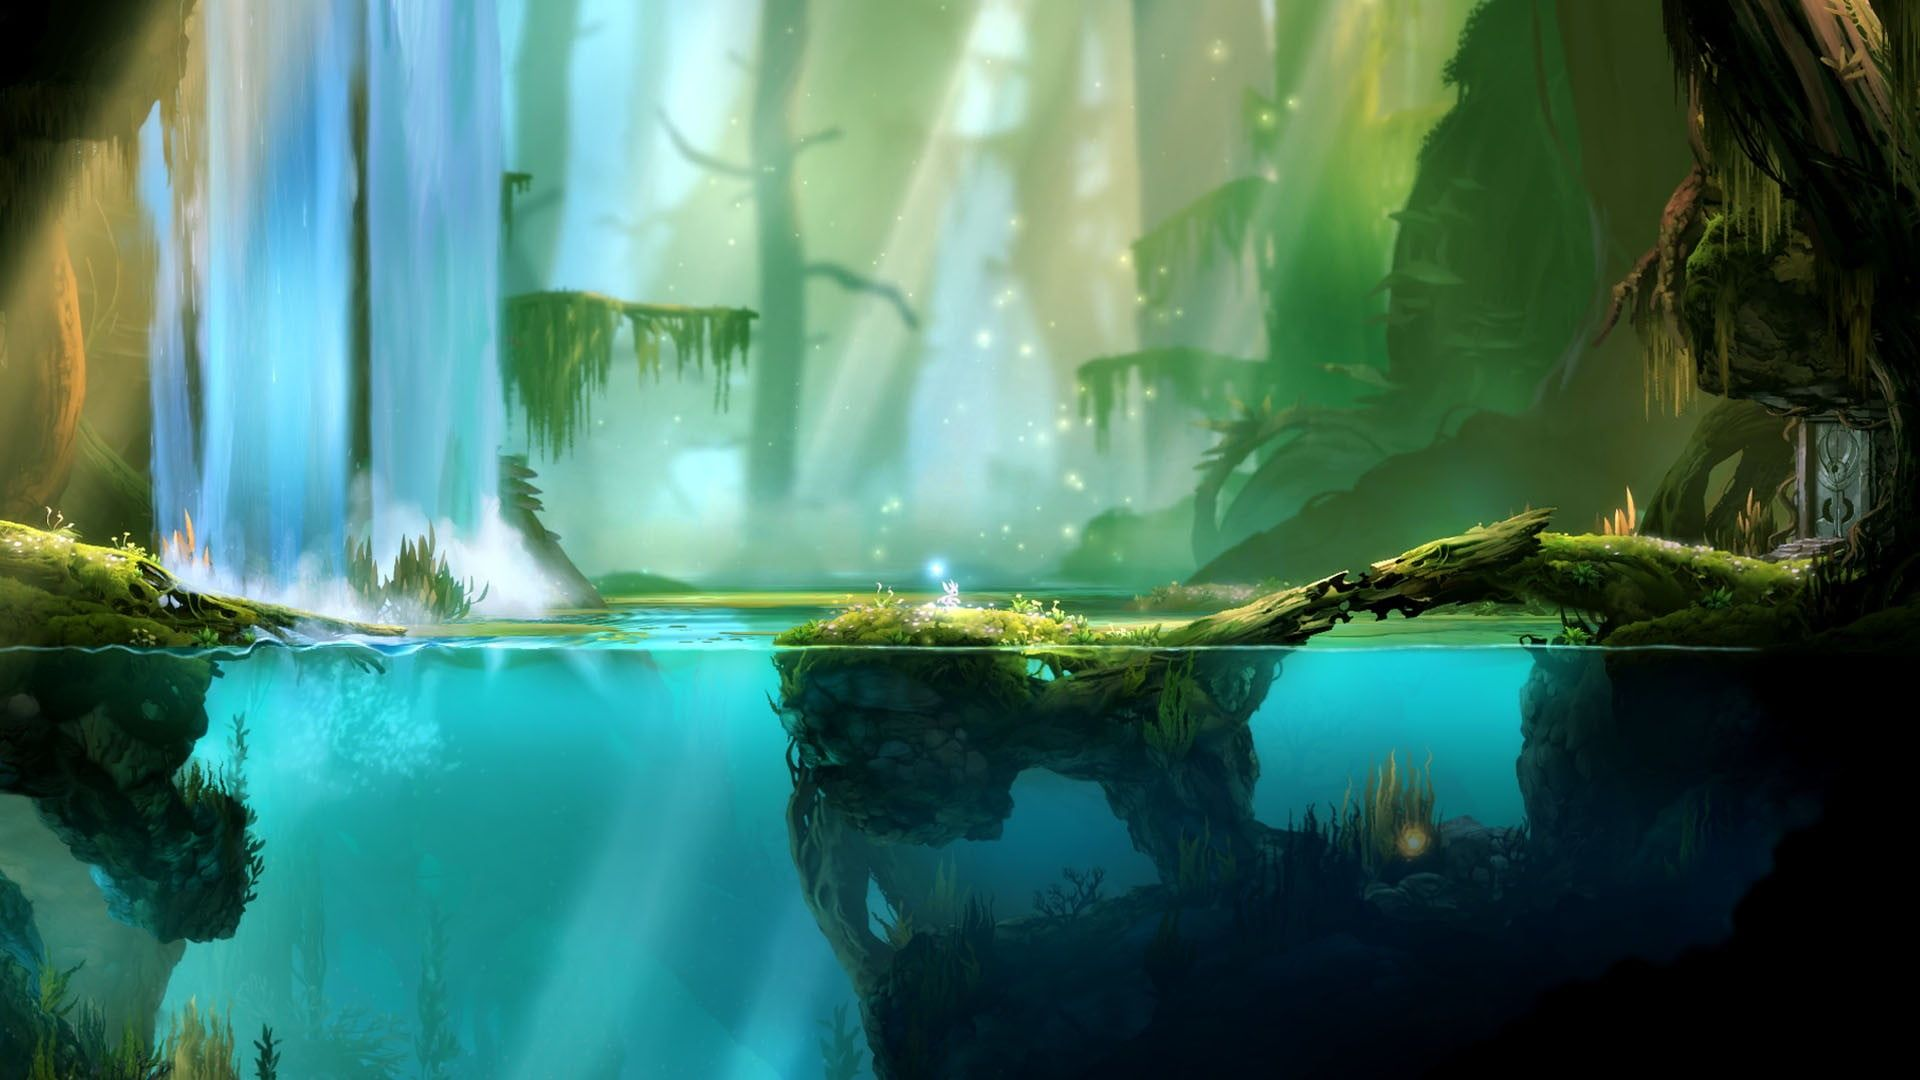 Forest Wallpaper Forest And Body Of Water During Daytime Illustration Digital Art Video Games Water Trees Underwat In 2020 Game Concept Art Forest Art Forest Games